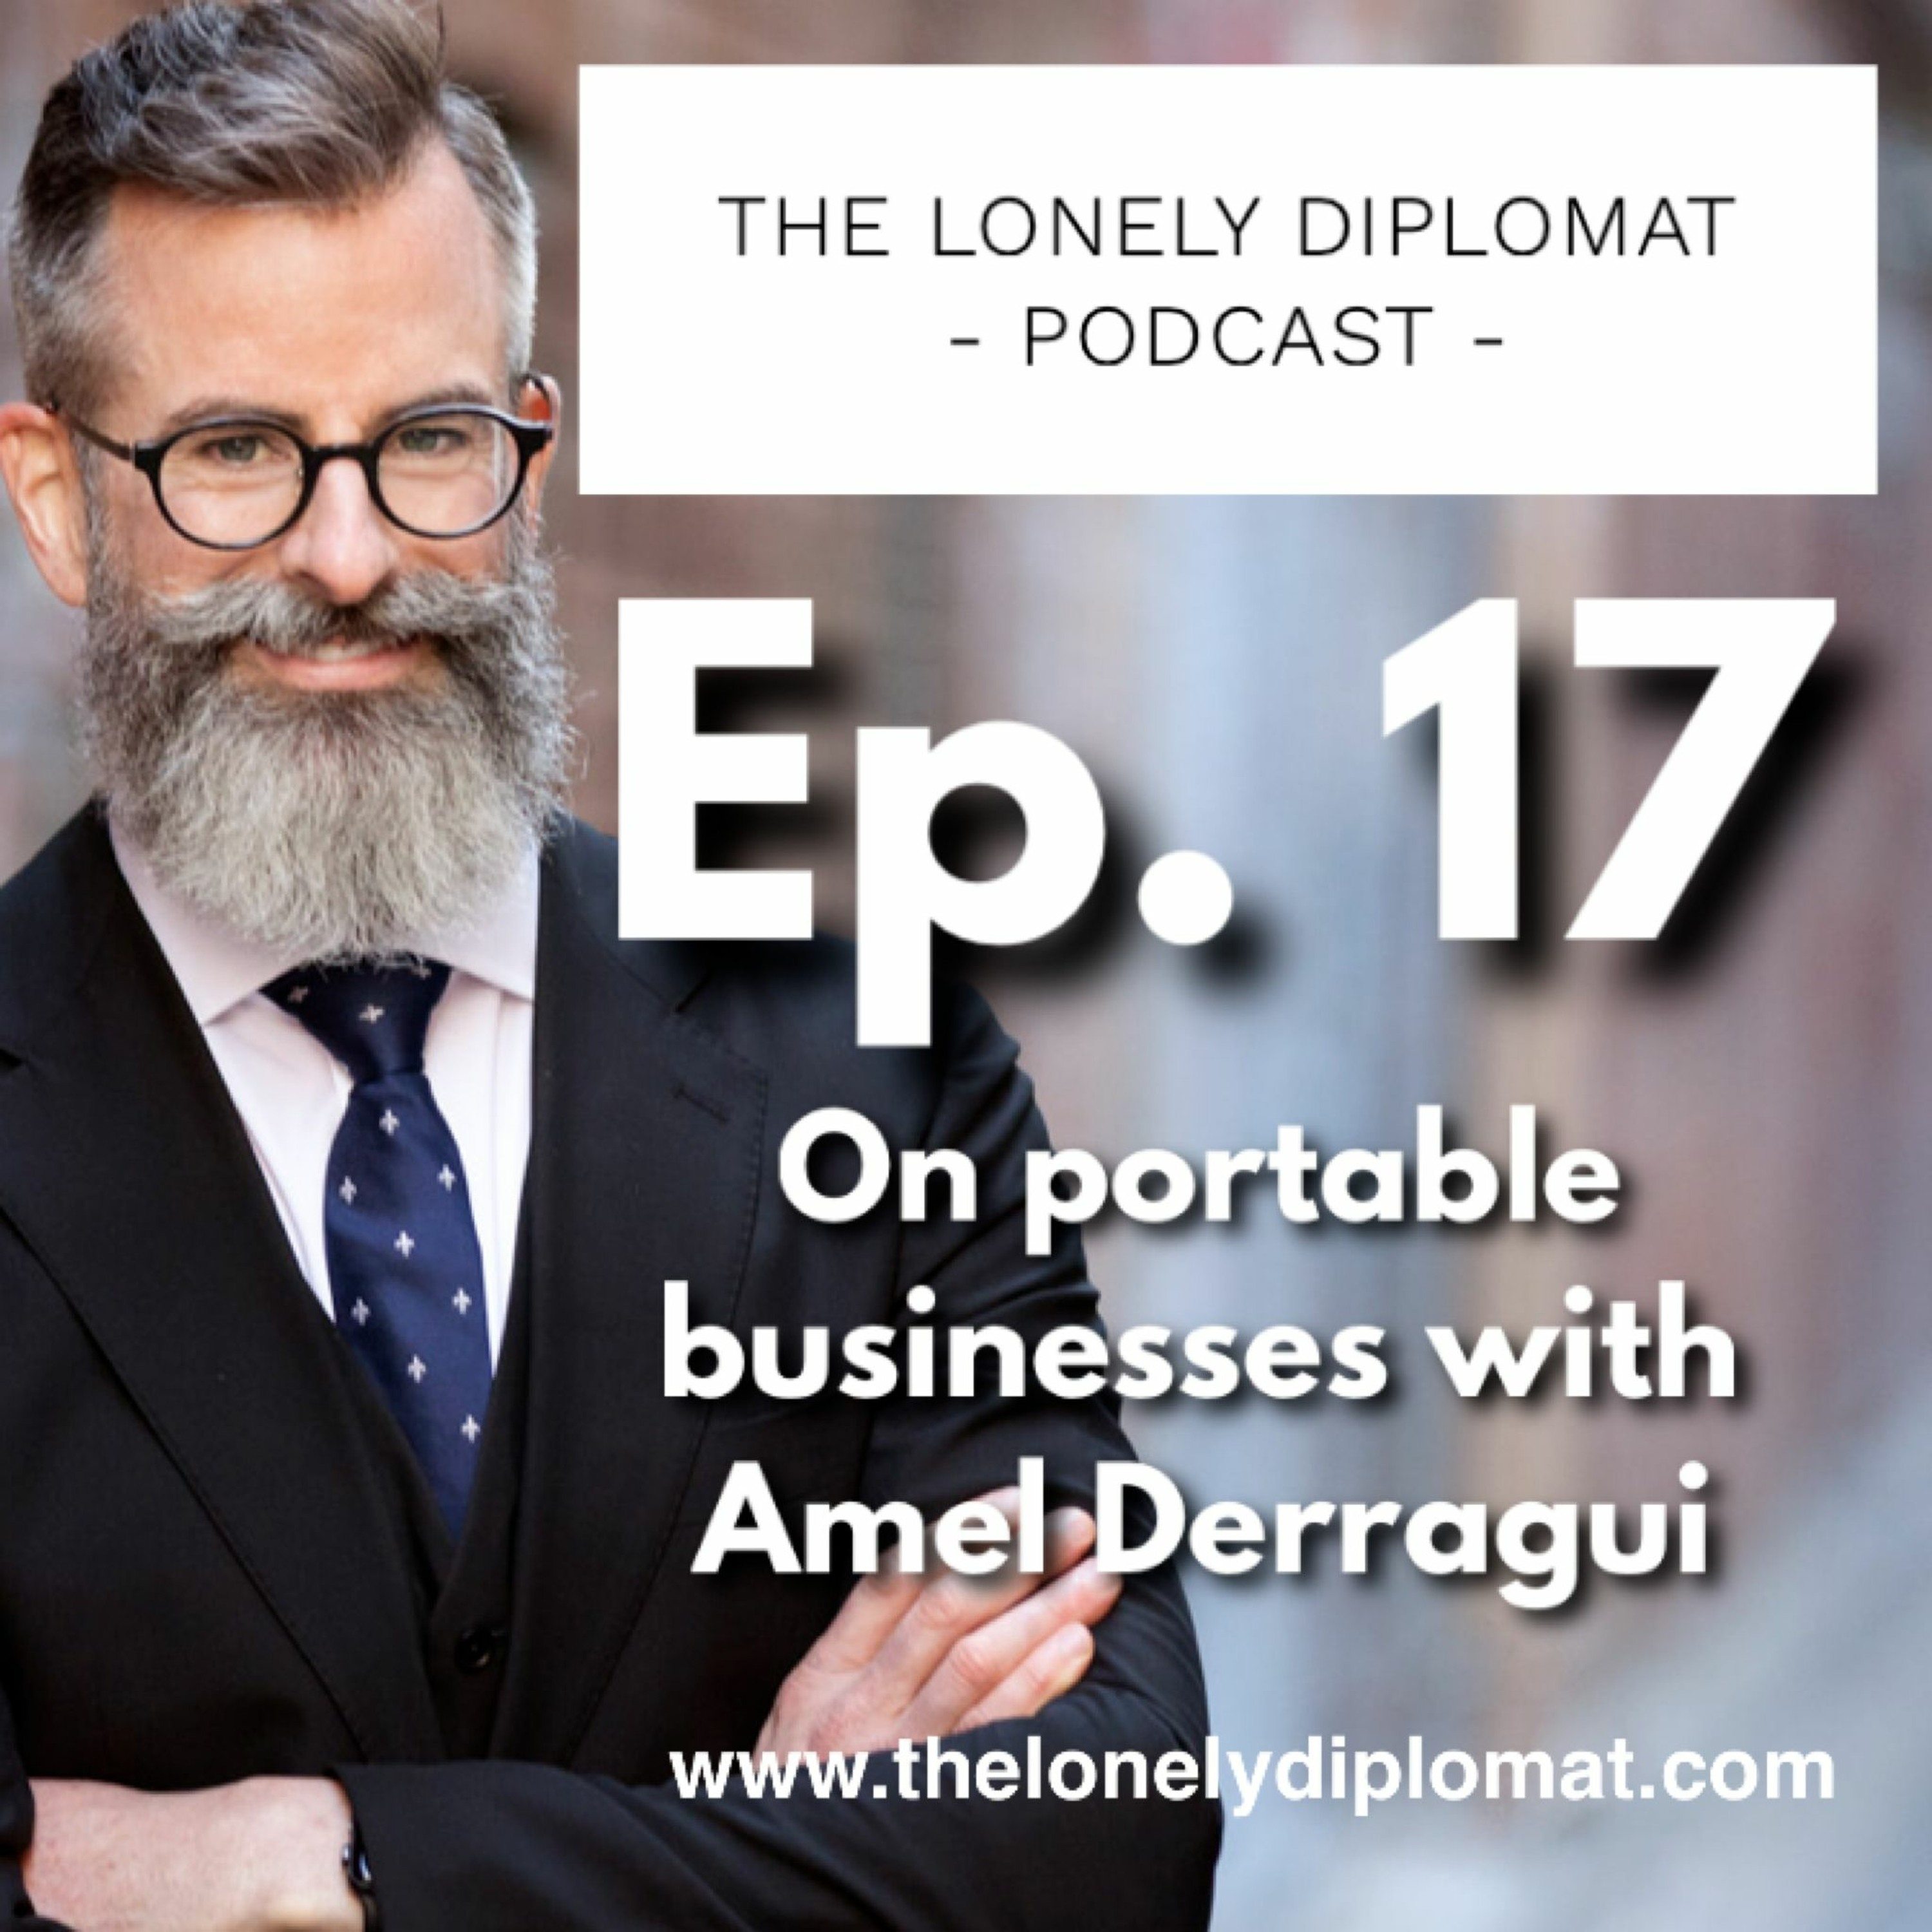 Ep. 17 - On portable businesses with Amel Derragui